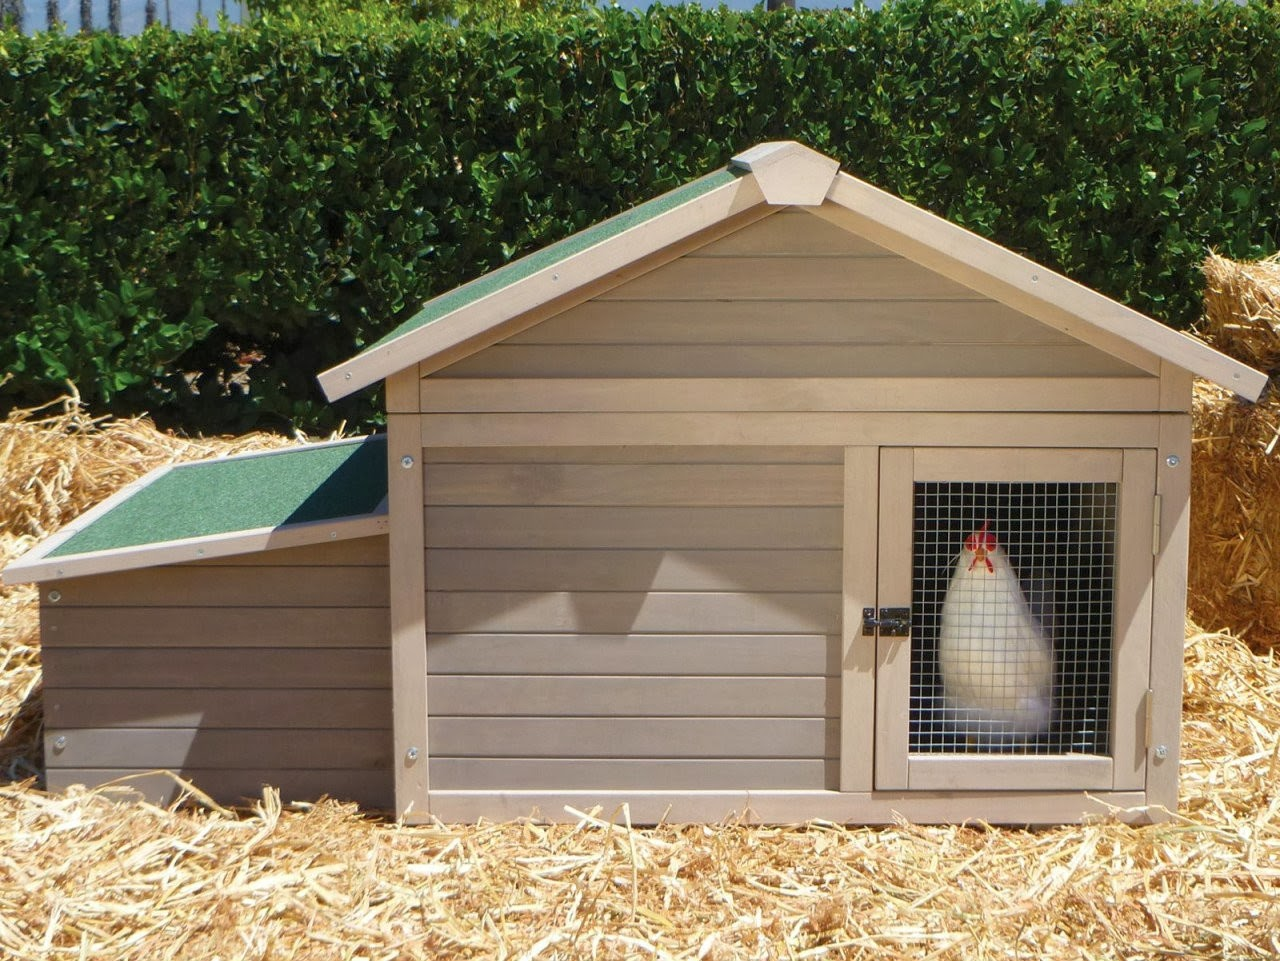 Chicken house plans how to build a chicken house for Poultry house plans for 100 chickens